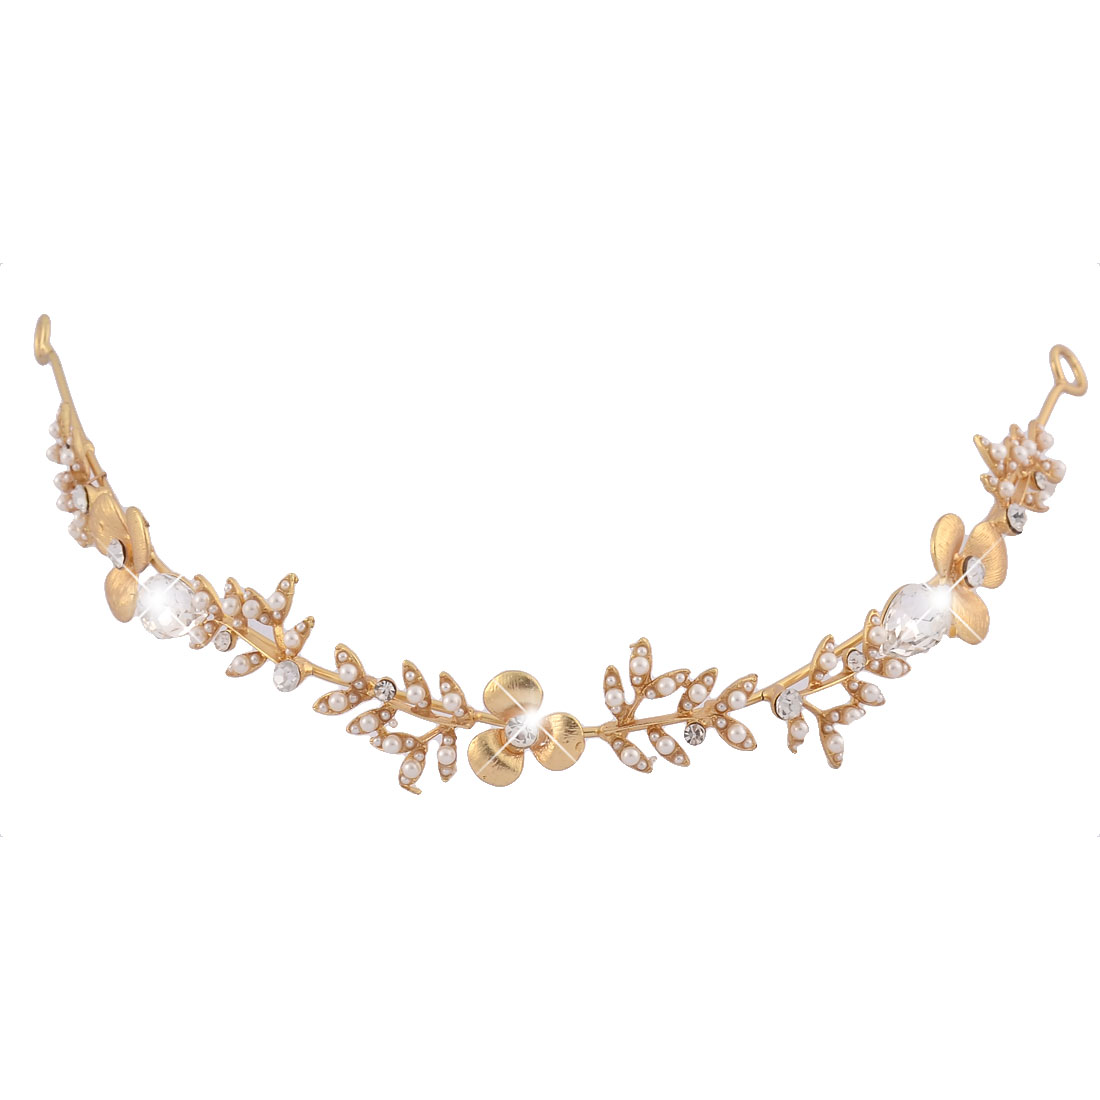 Bridal Rhinestone Inlaid Flower Patterned Hair Band Headband Gold Tone